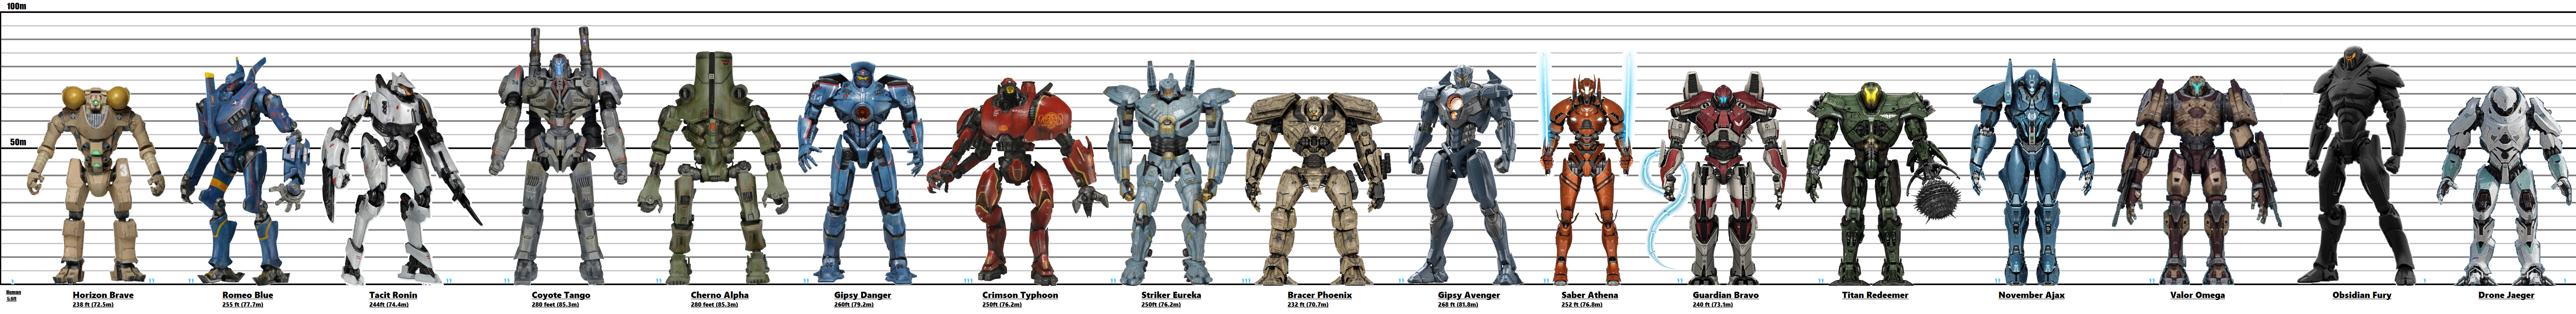 Ultimate Ppdc Jaeger Generation Scale By Kaijuattack877 On Deviantart